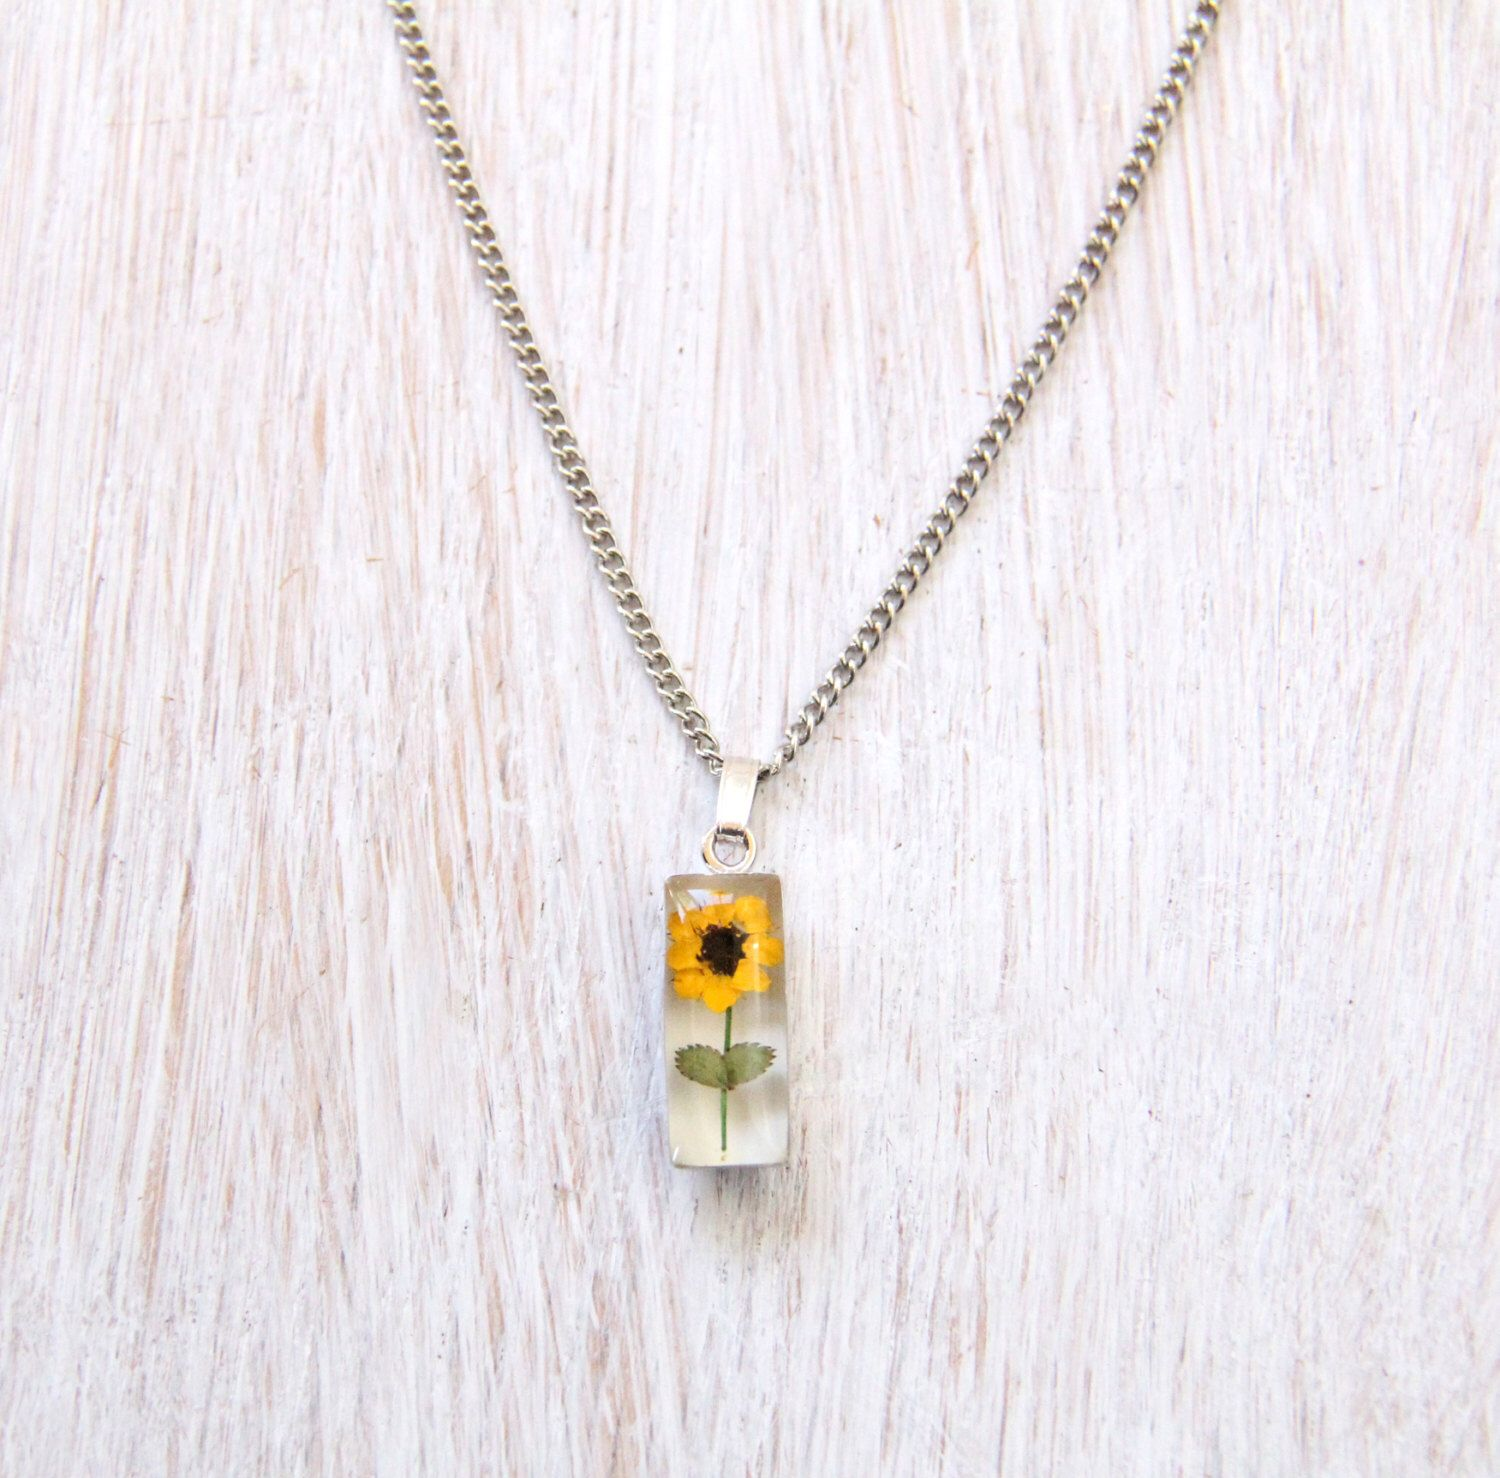 Pin By Jenni Iversen On Accessories Sunflower Necklace